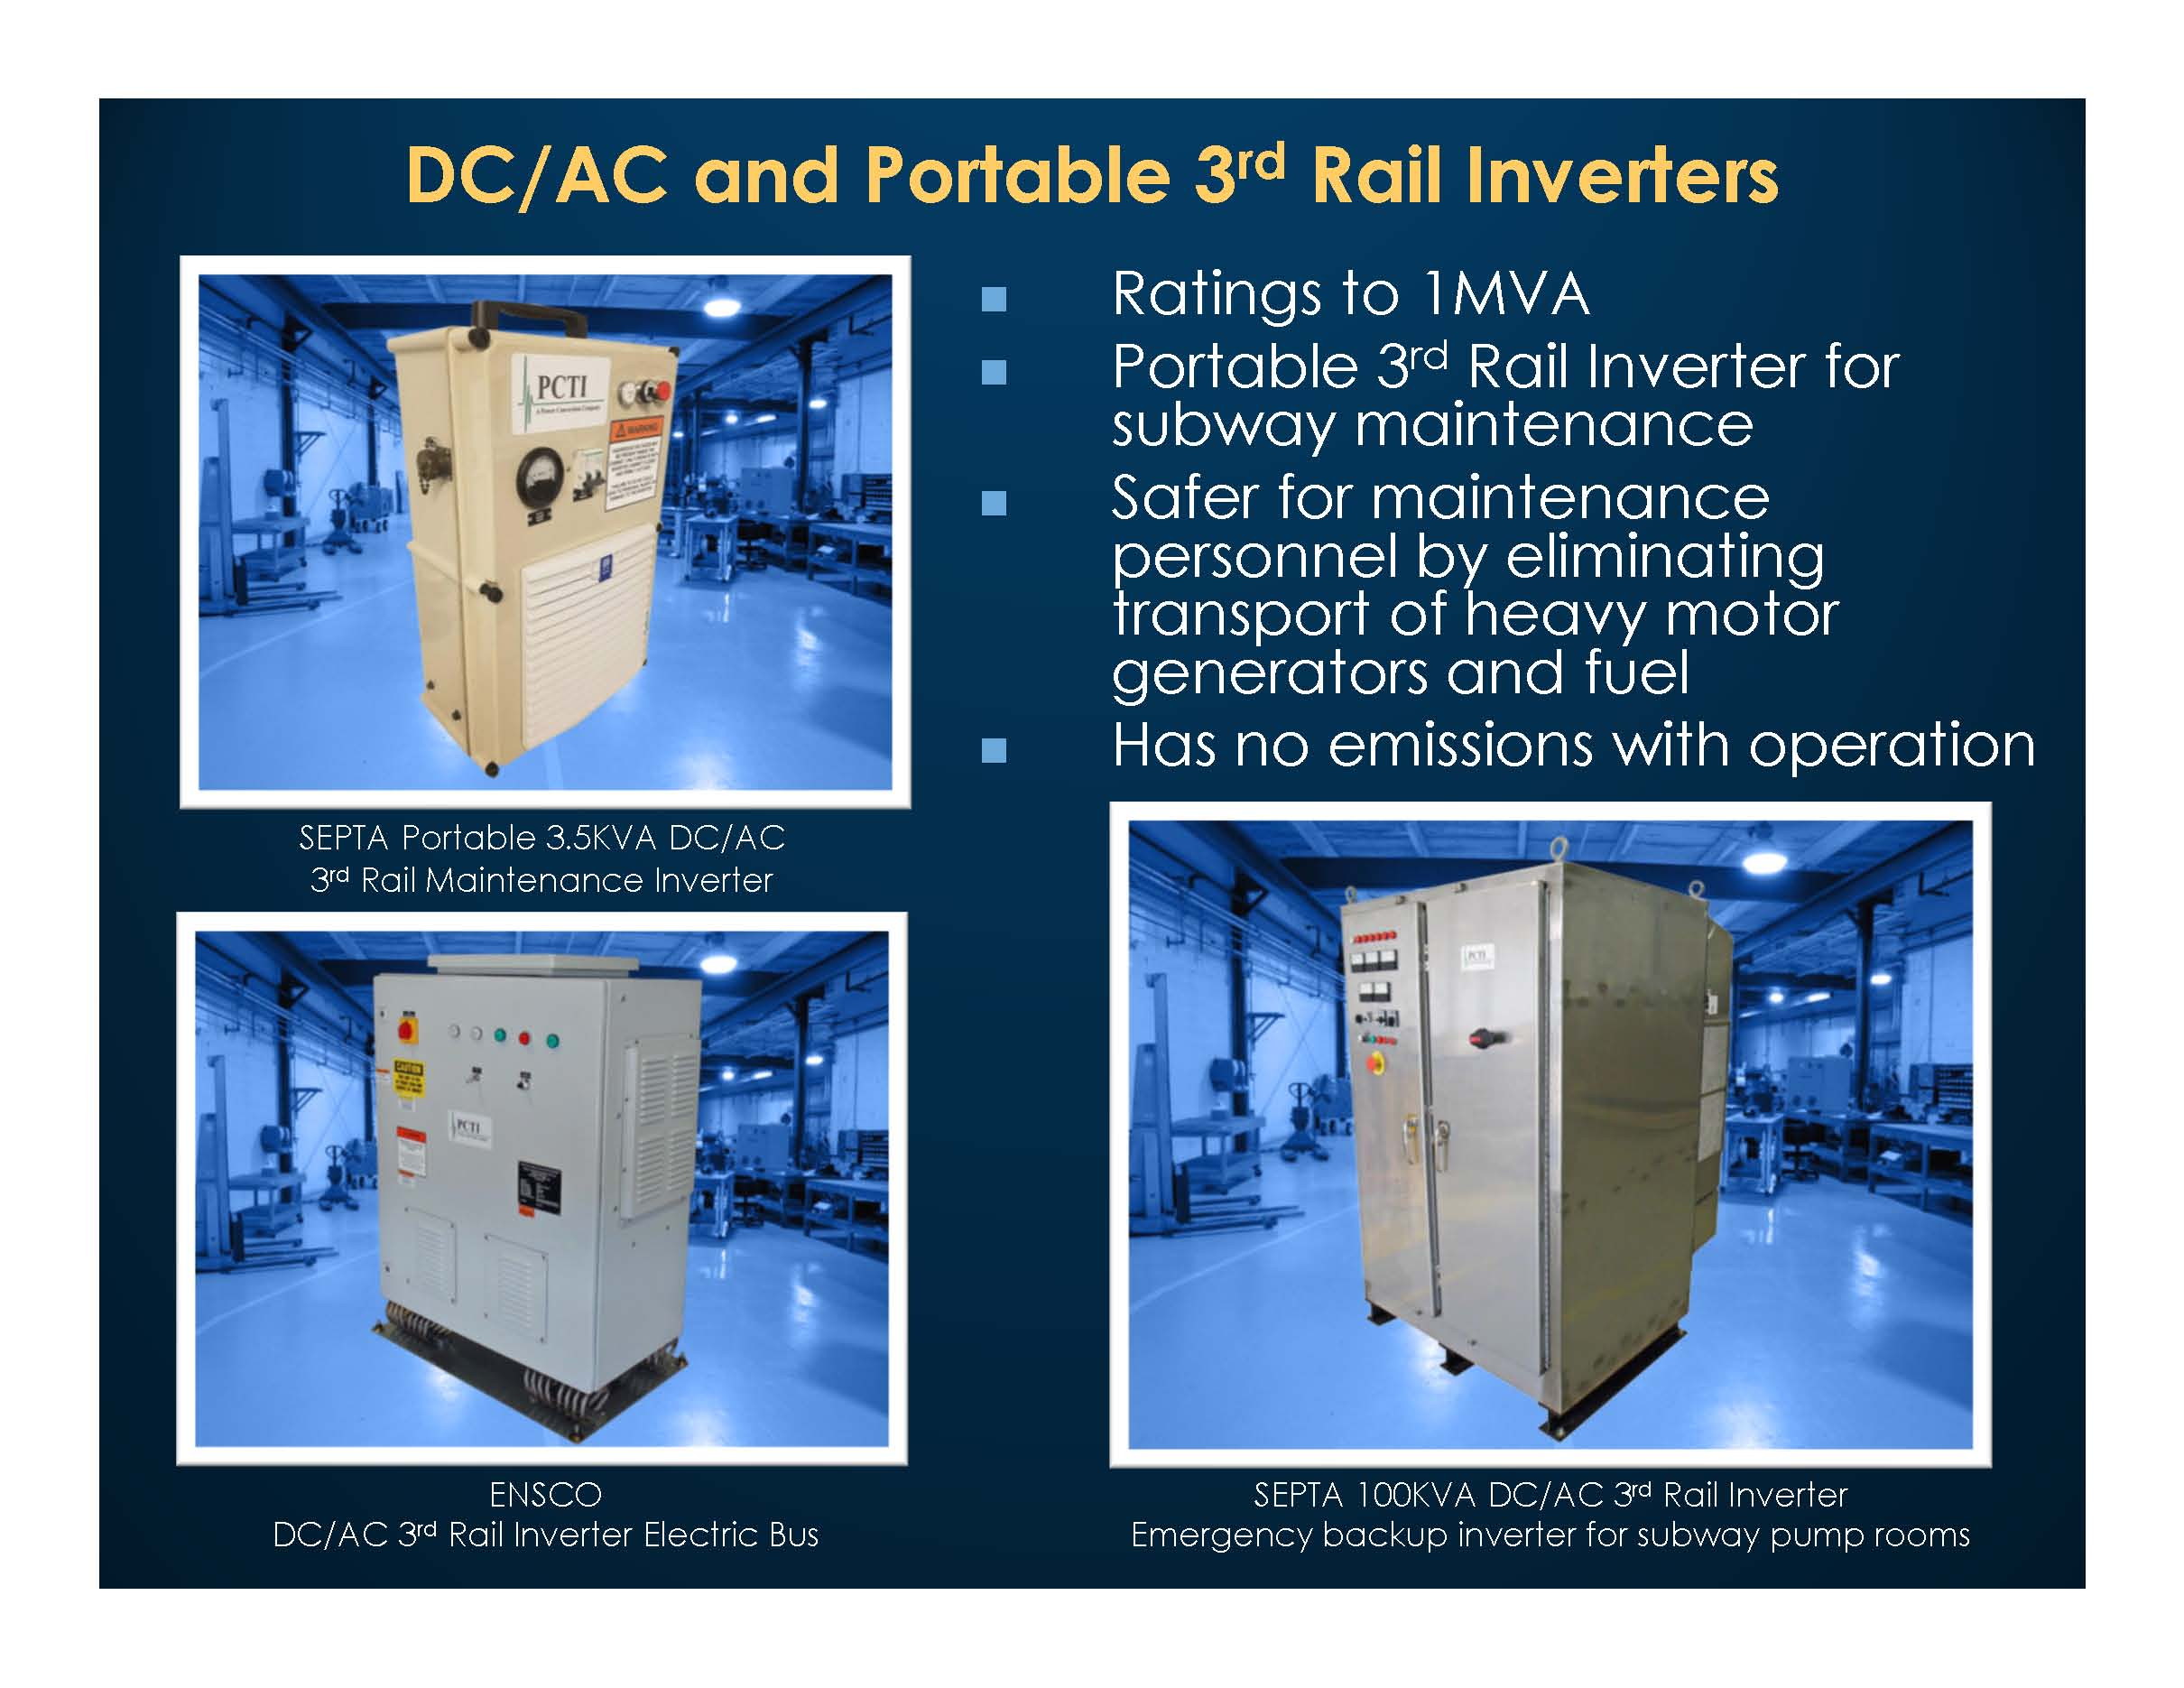 Third Rail Inverters